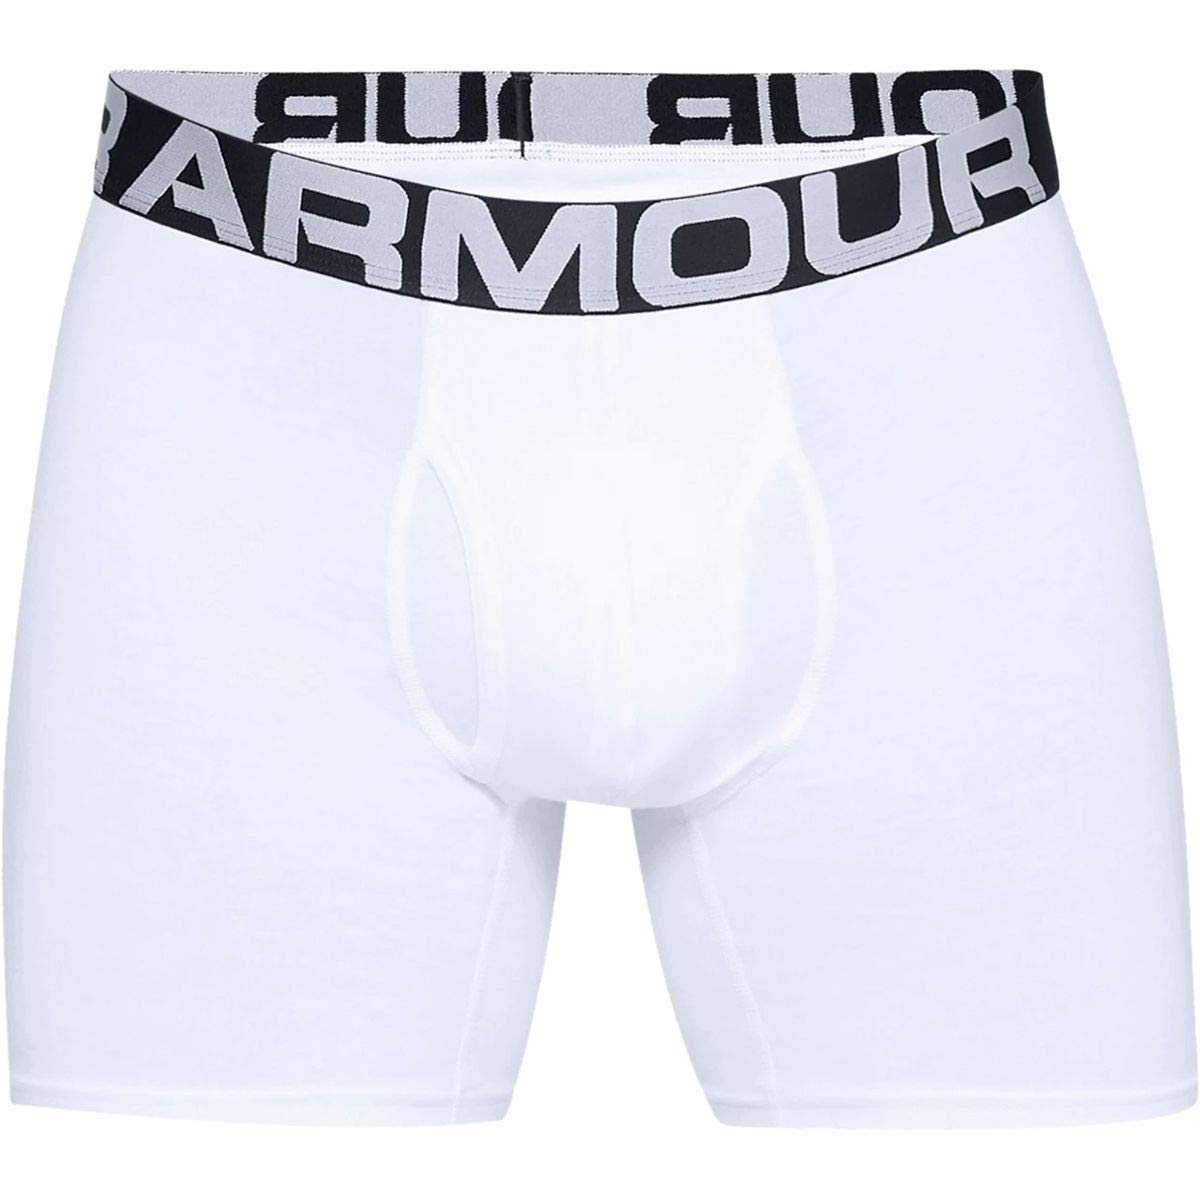 Under Armour Charged Cotton 6in Underwear 3-Pack Mens